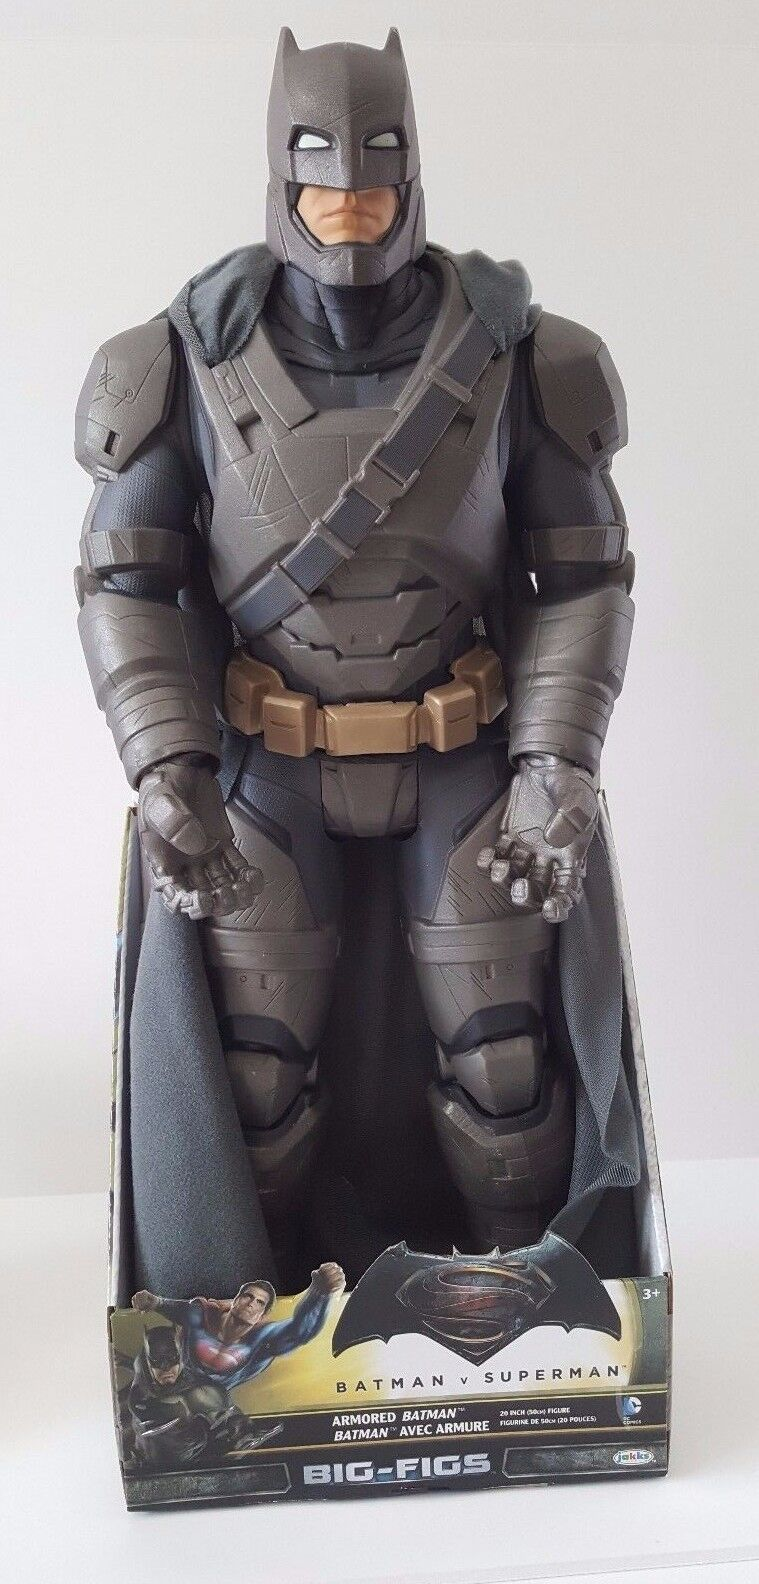 BATMAN vs SUPERMEN Big Figs ARMOROT BATMAN 19